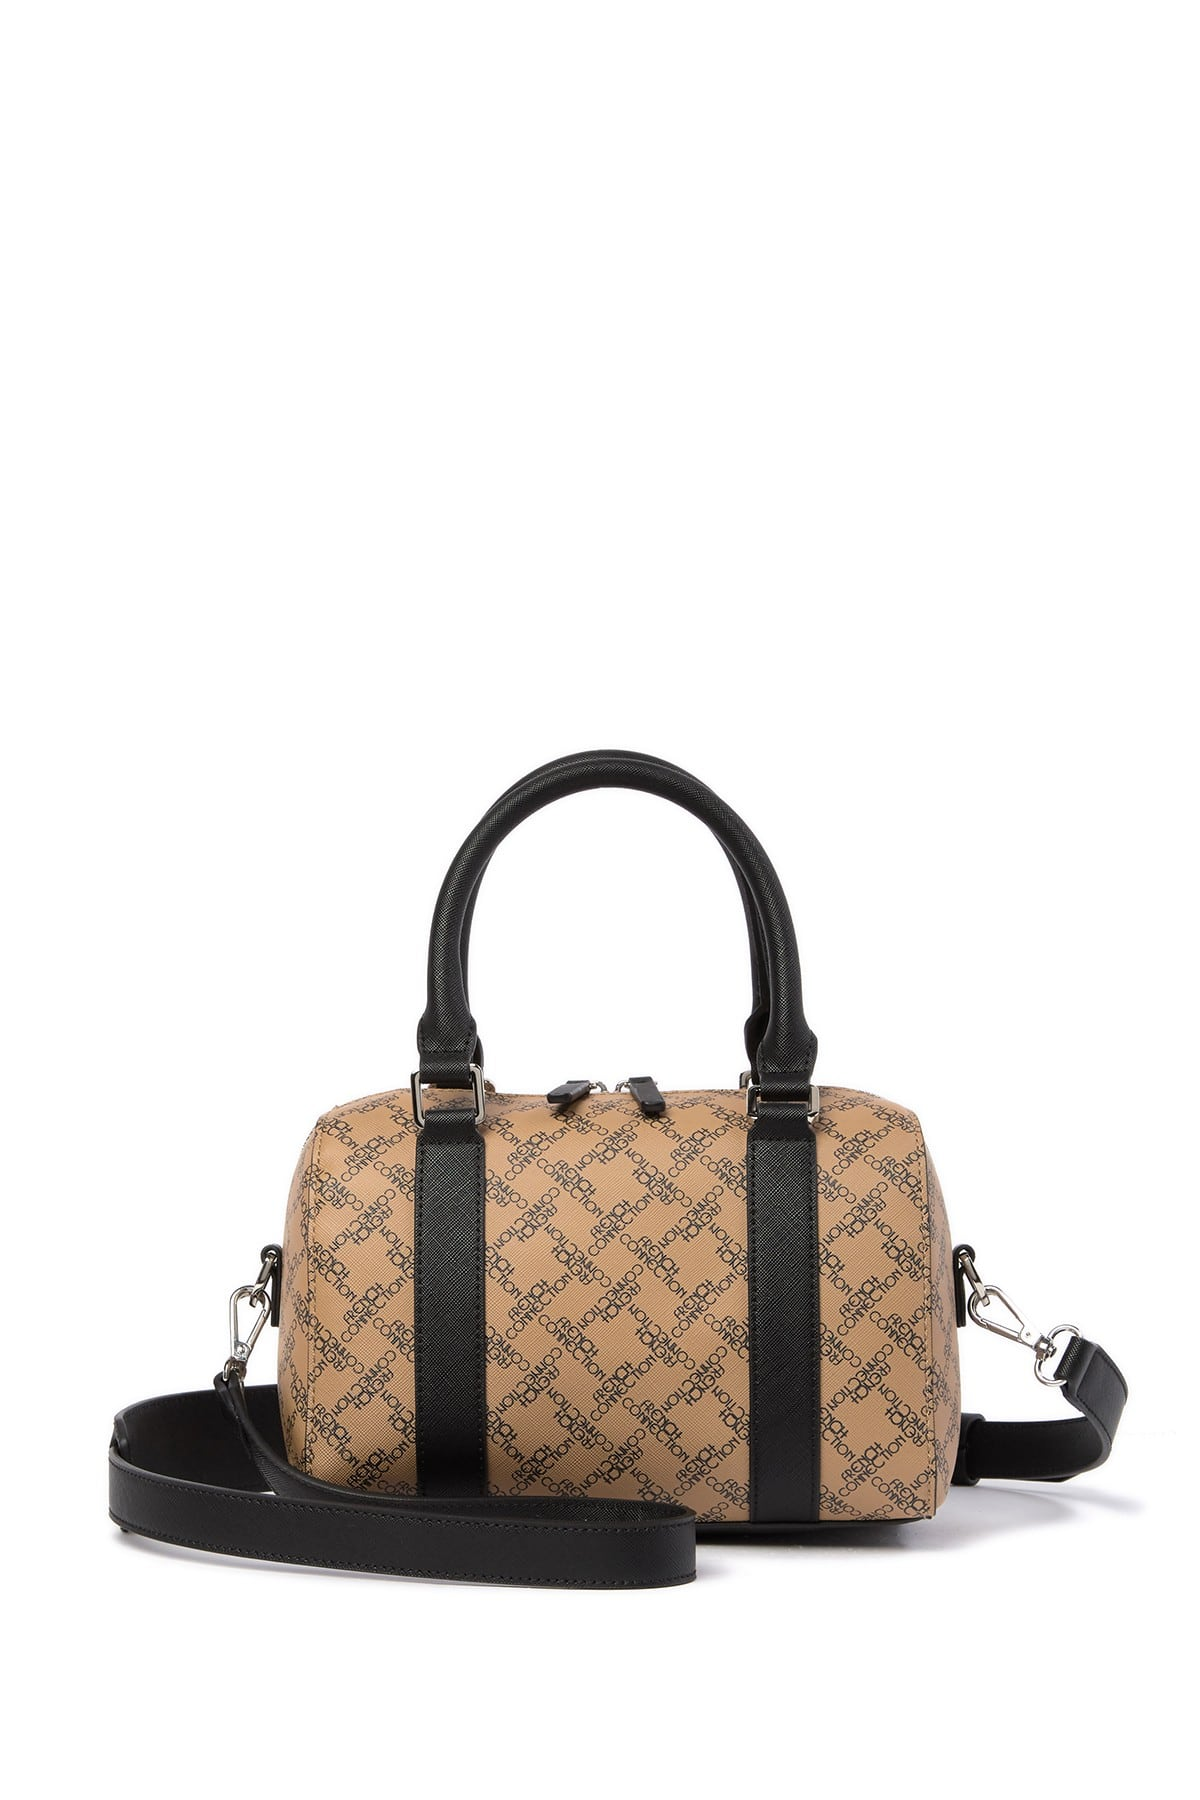 French Connection Marin Mini Speedy Satchel (various) $21 & More + Free S/H $100+